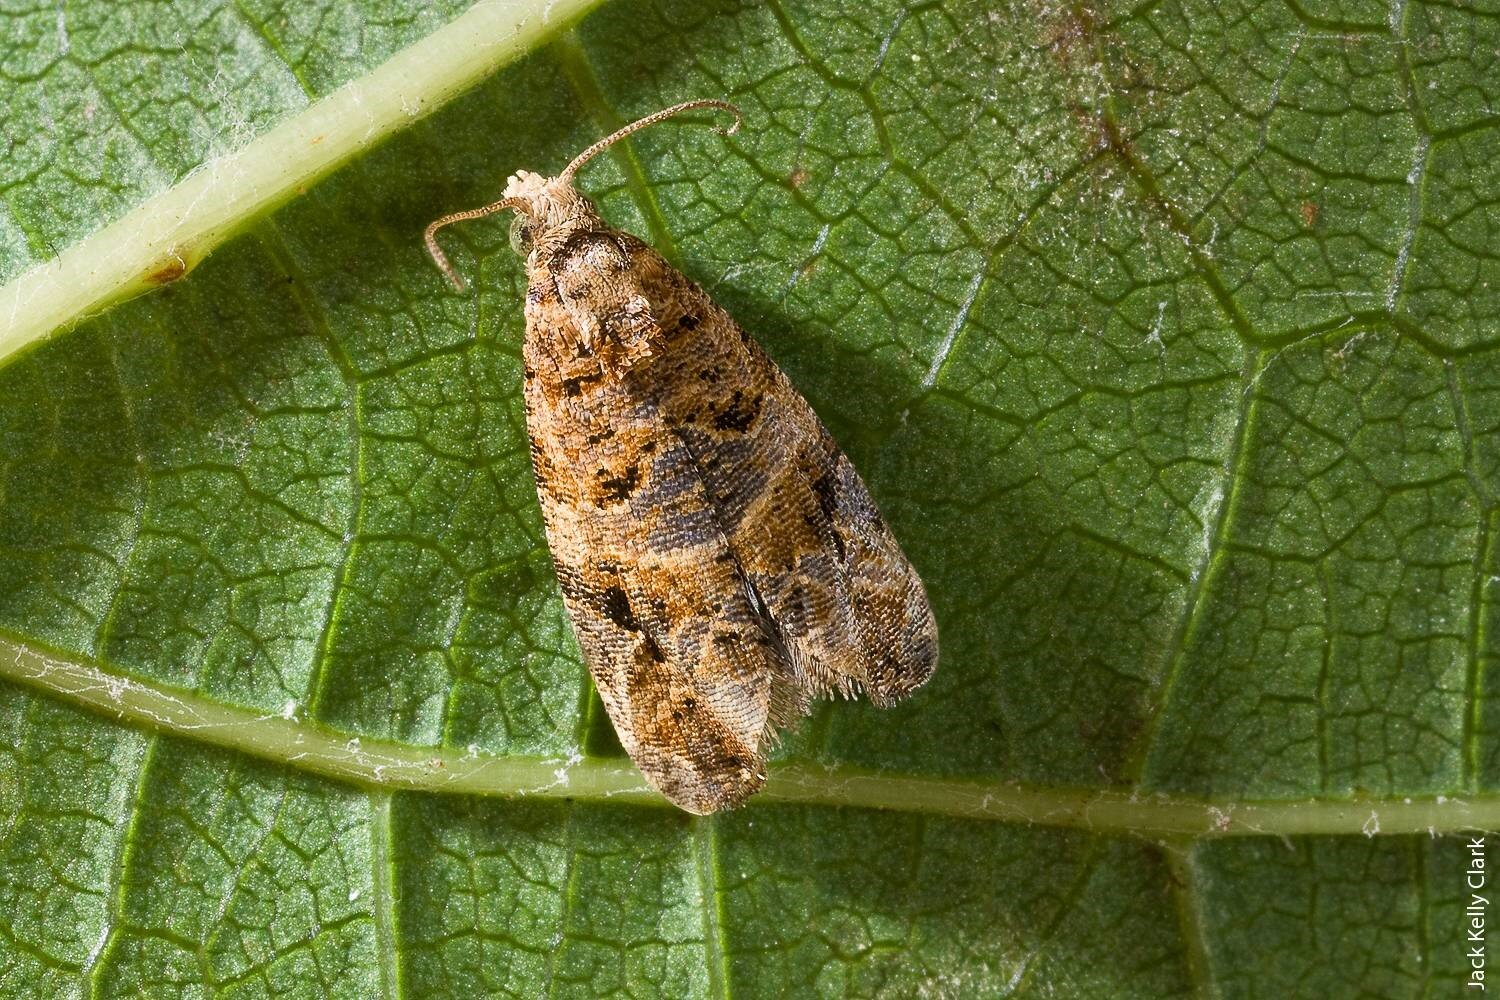 Lobesia:  European Grapevine Moth image by Jack Kelly Clark , University of California Extension